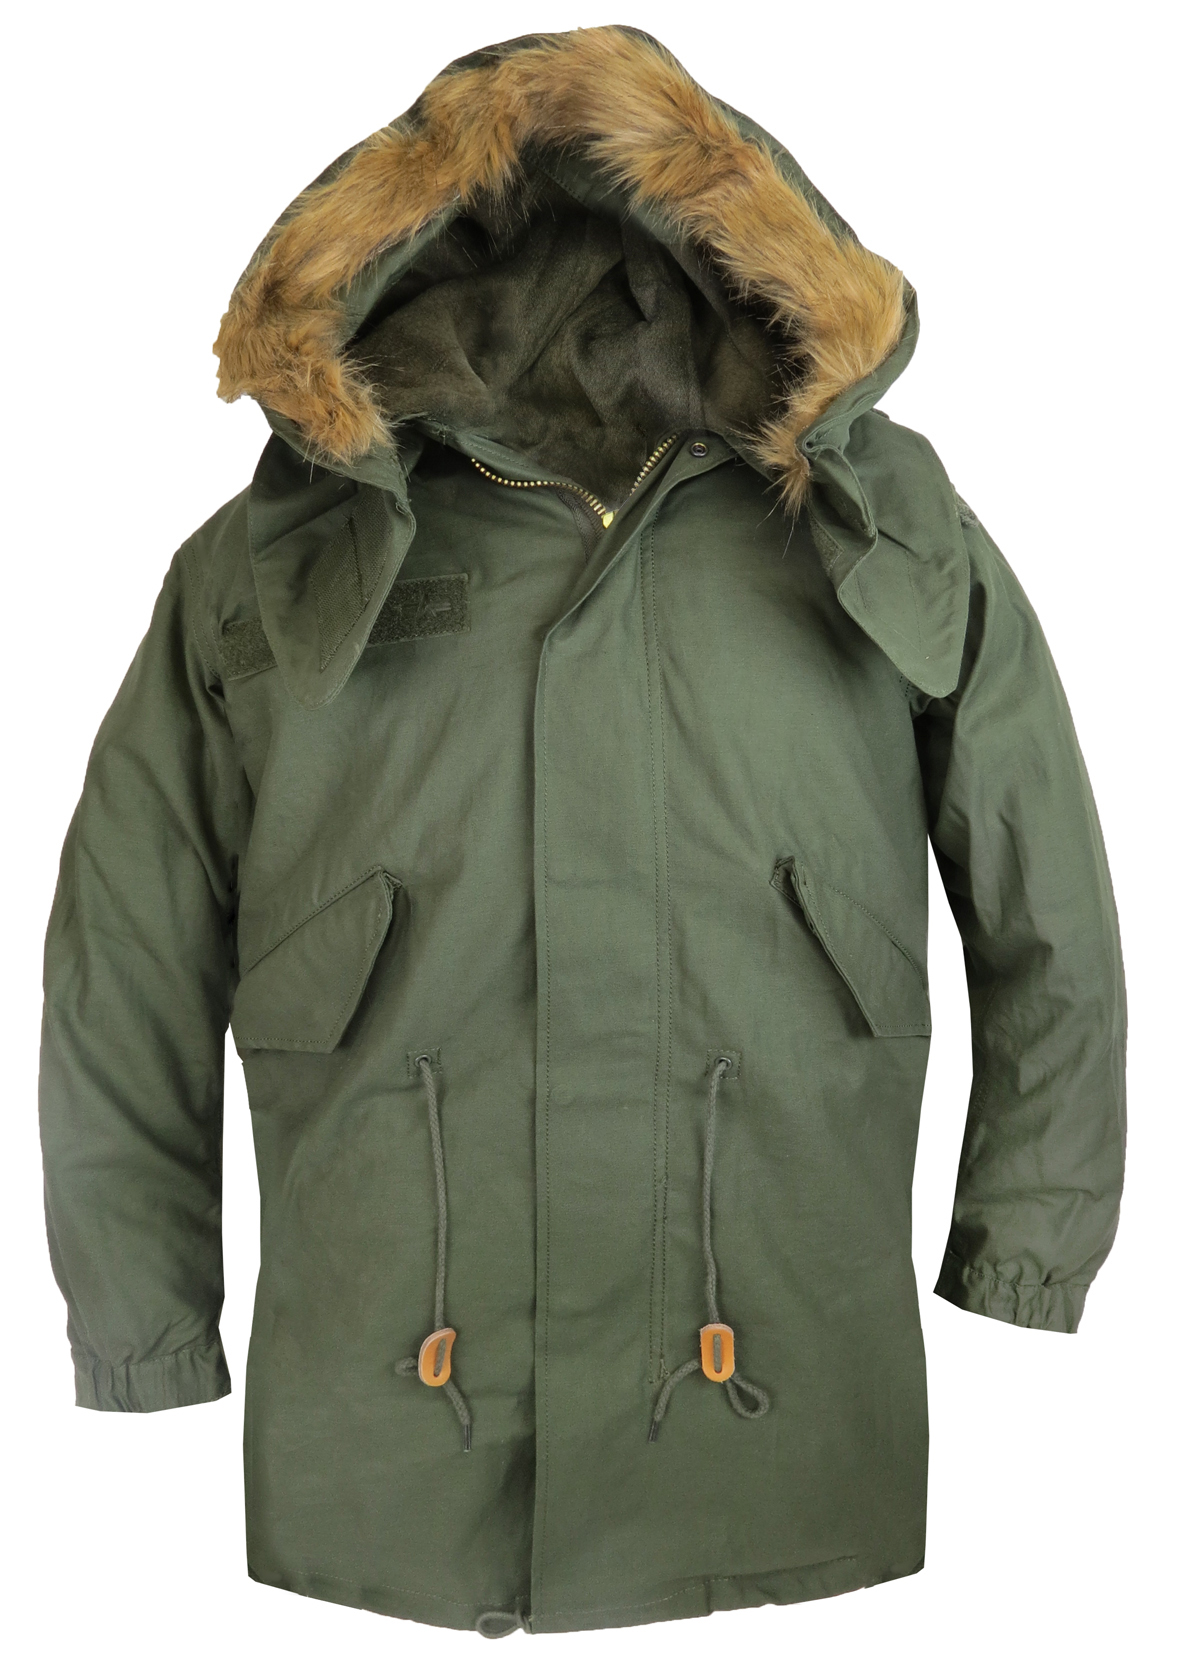 The fishtail parka was first used by the United States Army in during the Korean War. Following the end of the Second World War the US army recognized the need for a new cold weather combat system, resulting in four main styles of fishtail parka: the EX, M, M and the M